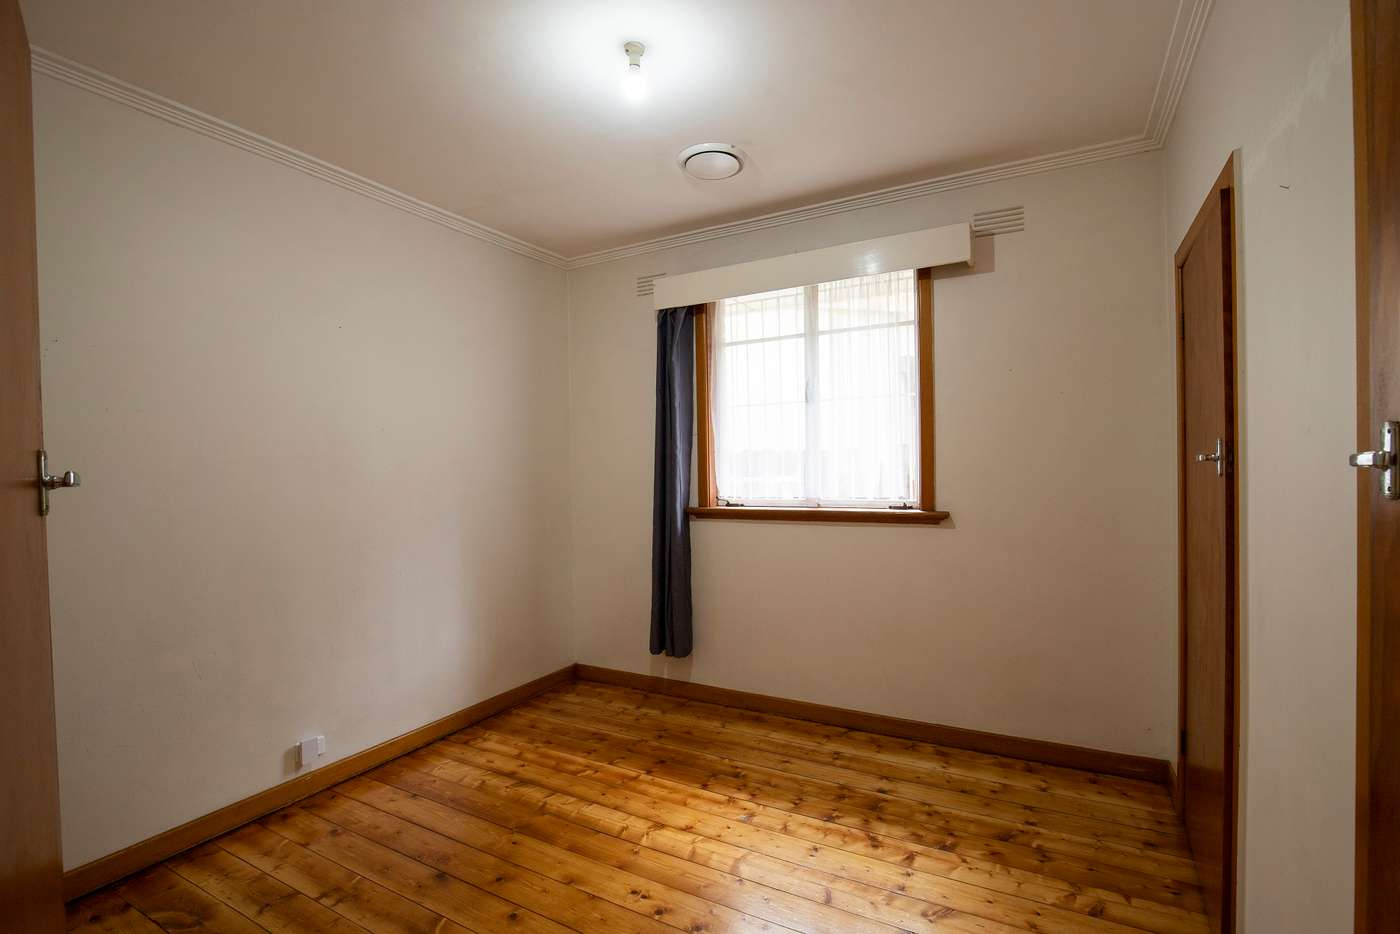 Sixth view of Homely house listing, 1A Percival Street, Preston VIC 3072